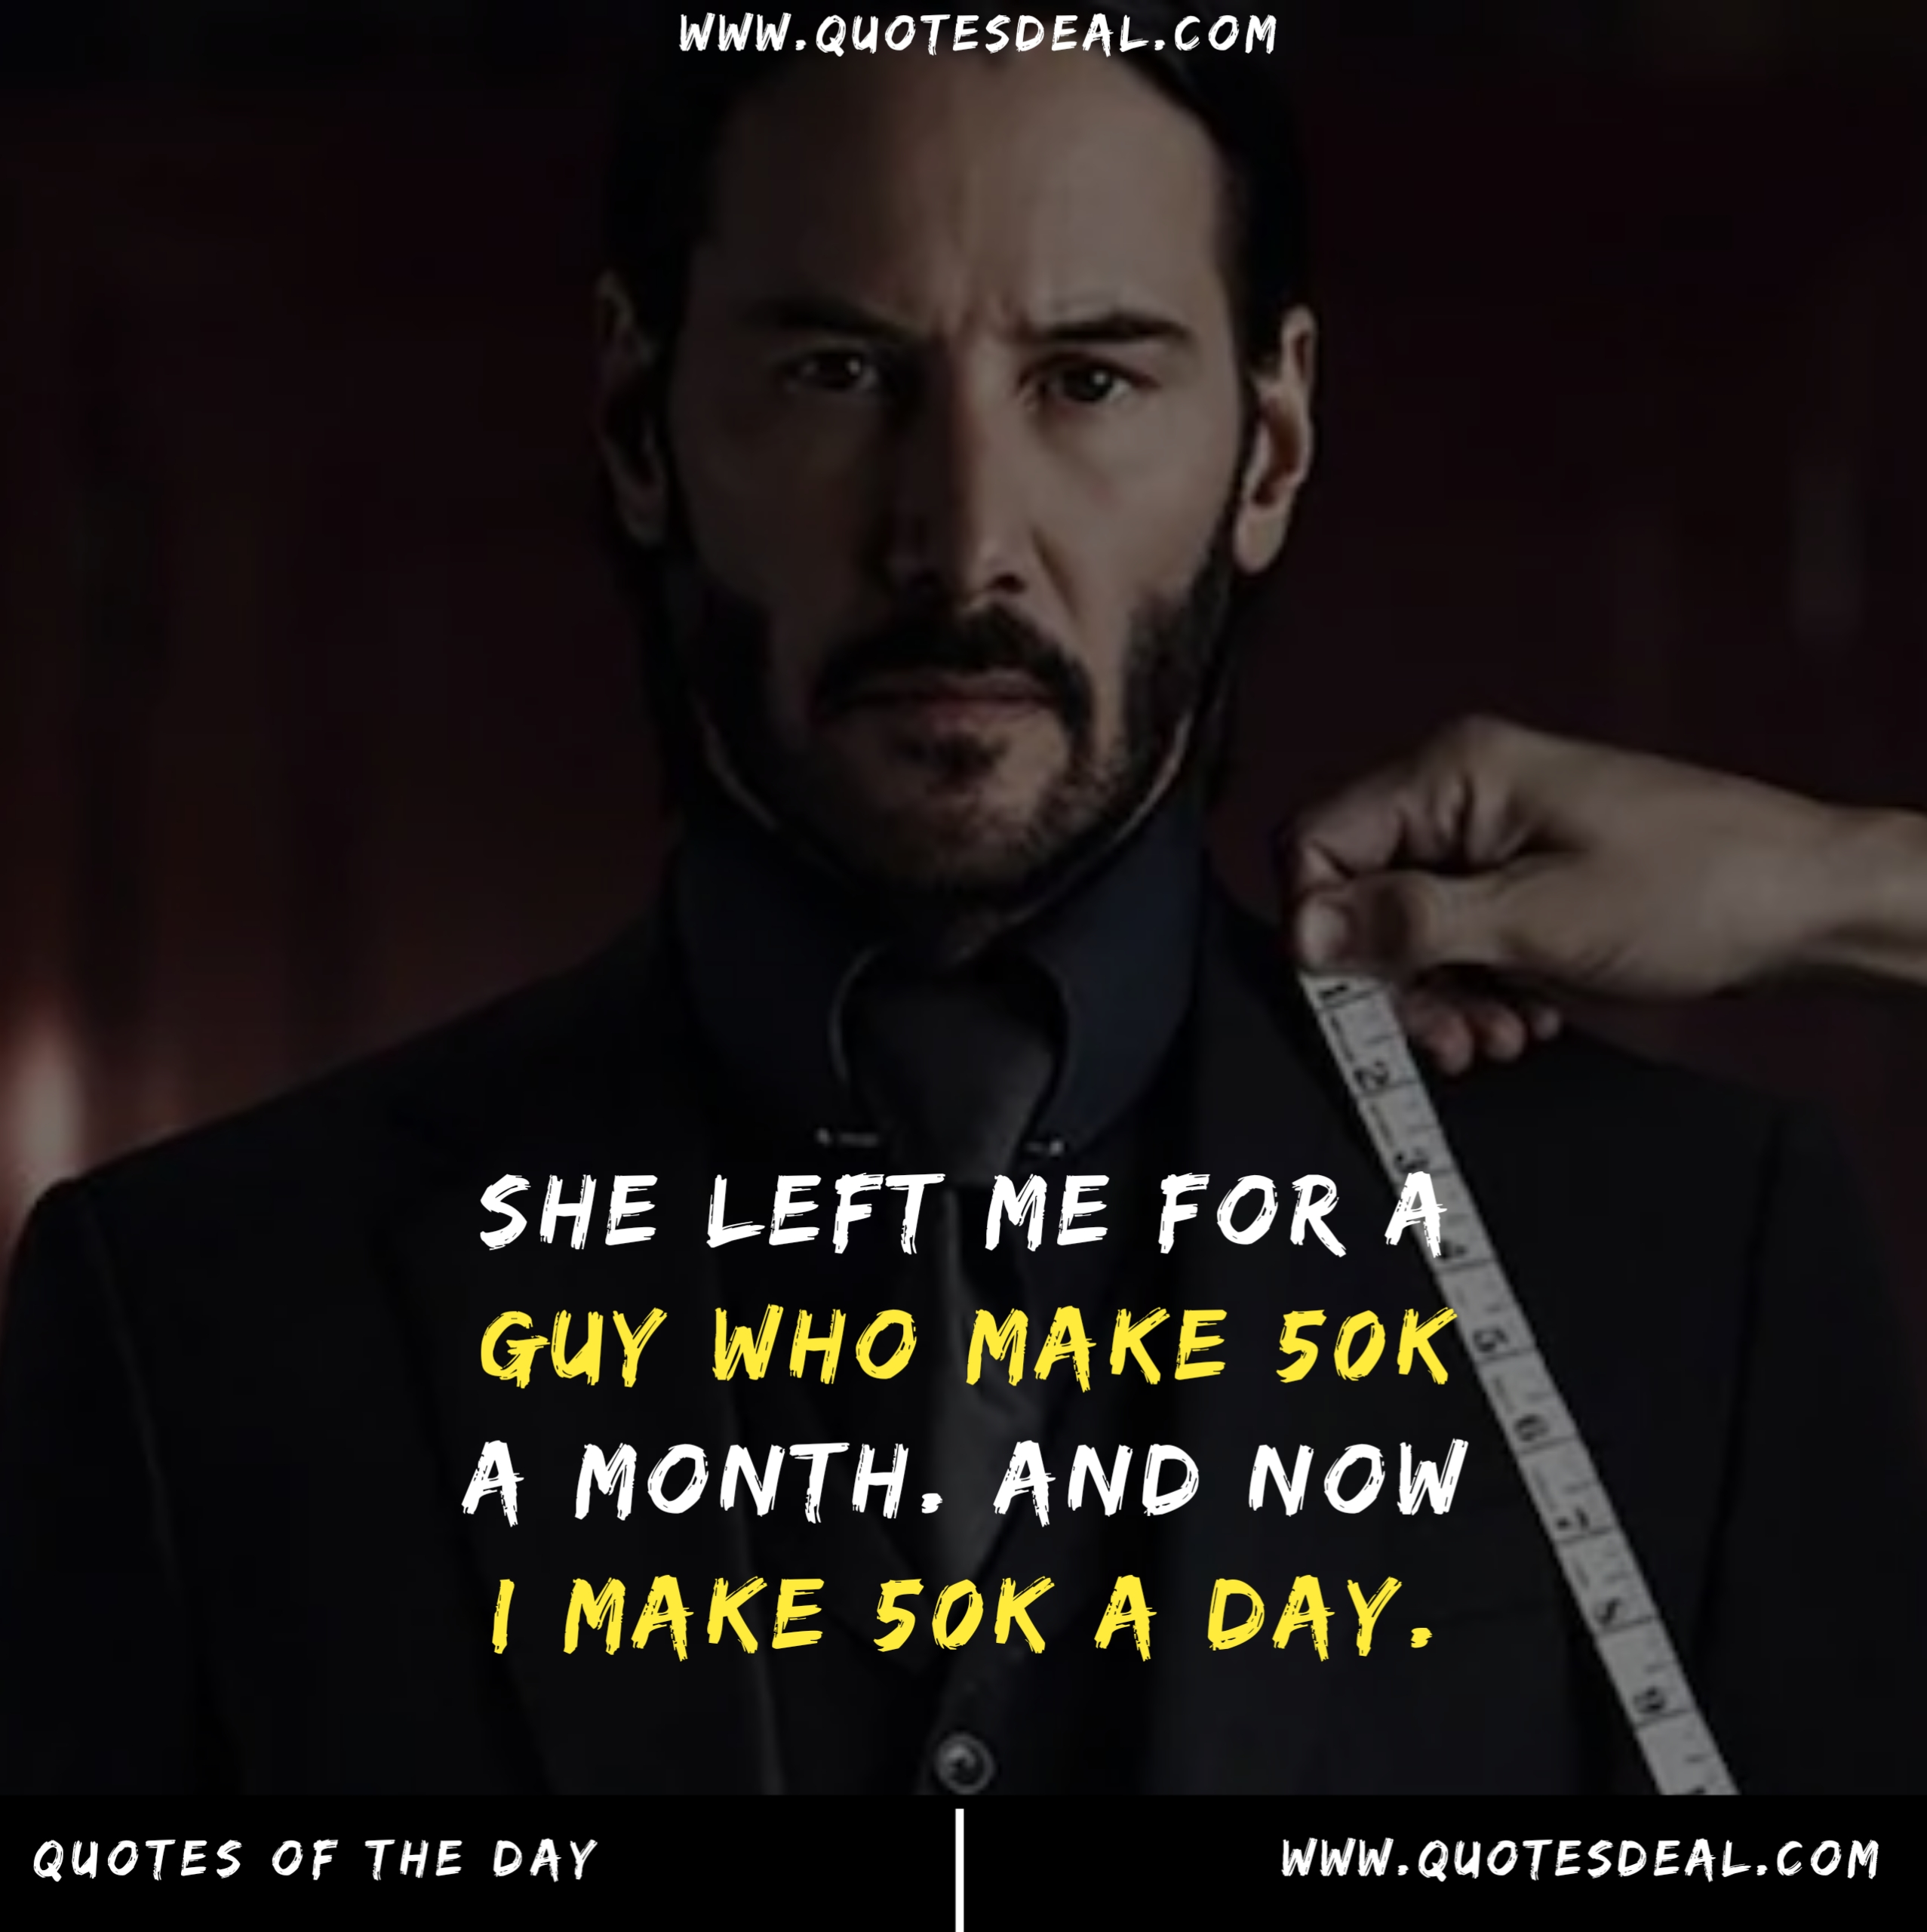 She left me for a guy